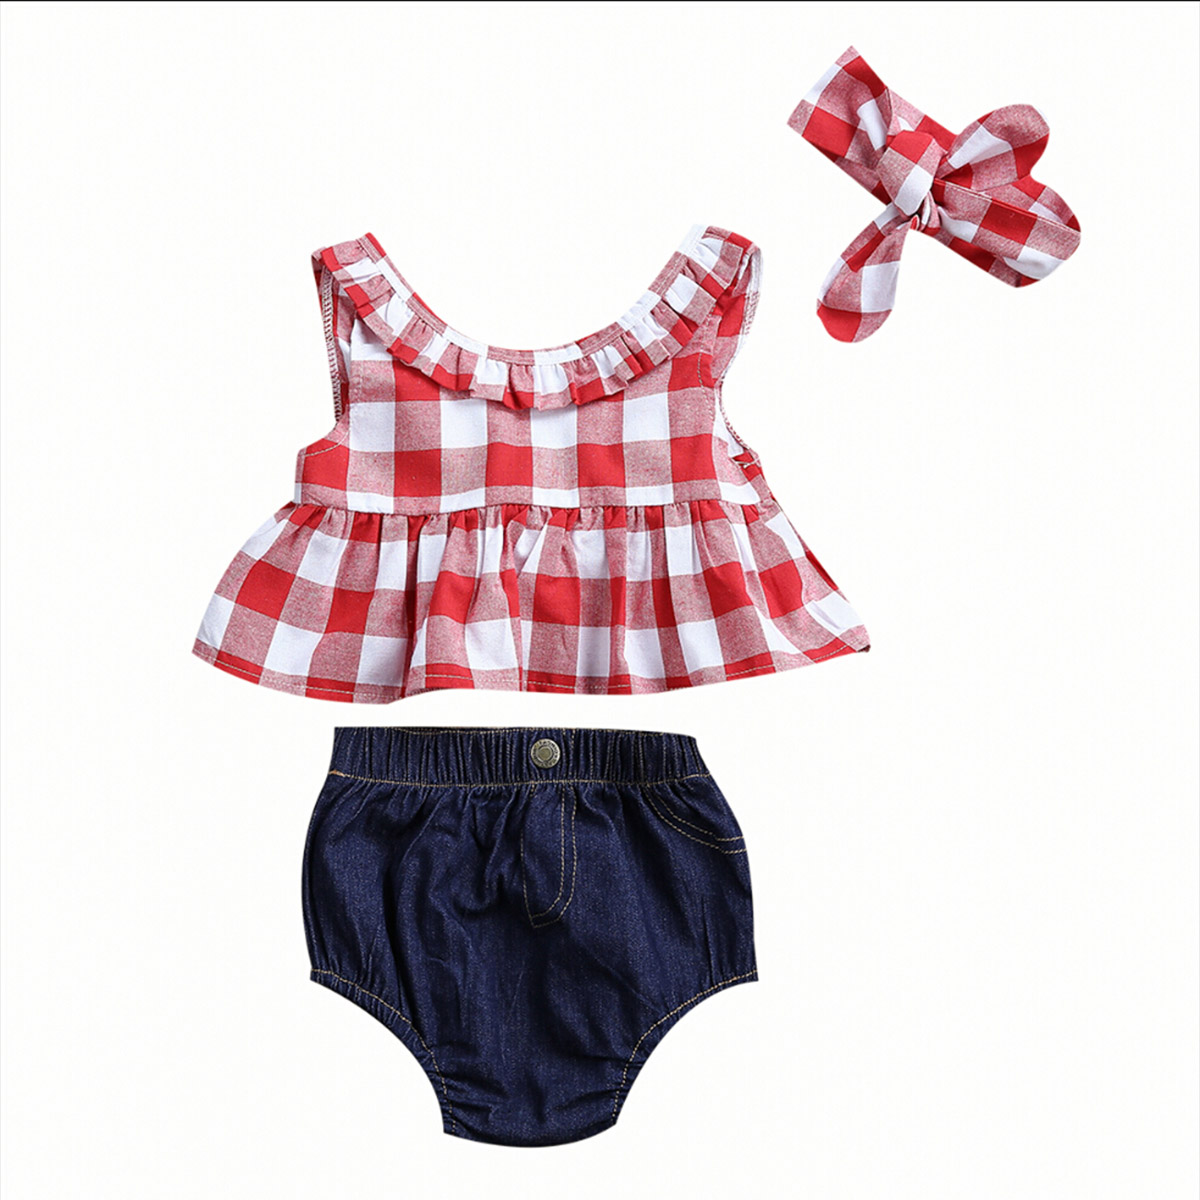 3pcs Cute Kids Baby Girls Clothes Plaid Vest Sleeveless T-shirts Tops+Denim Briefs+Headwear Fashion Summer Outfits 3pcs outfit infantil girls clothes toddler baby girl plaid ruffled tops kids girls denim shorts cute headband summer outfits set